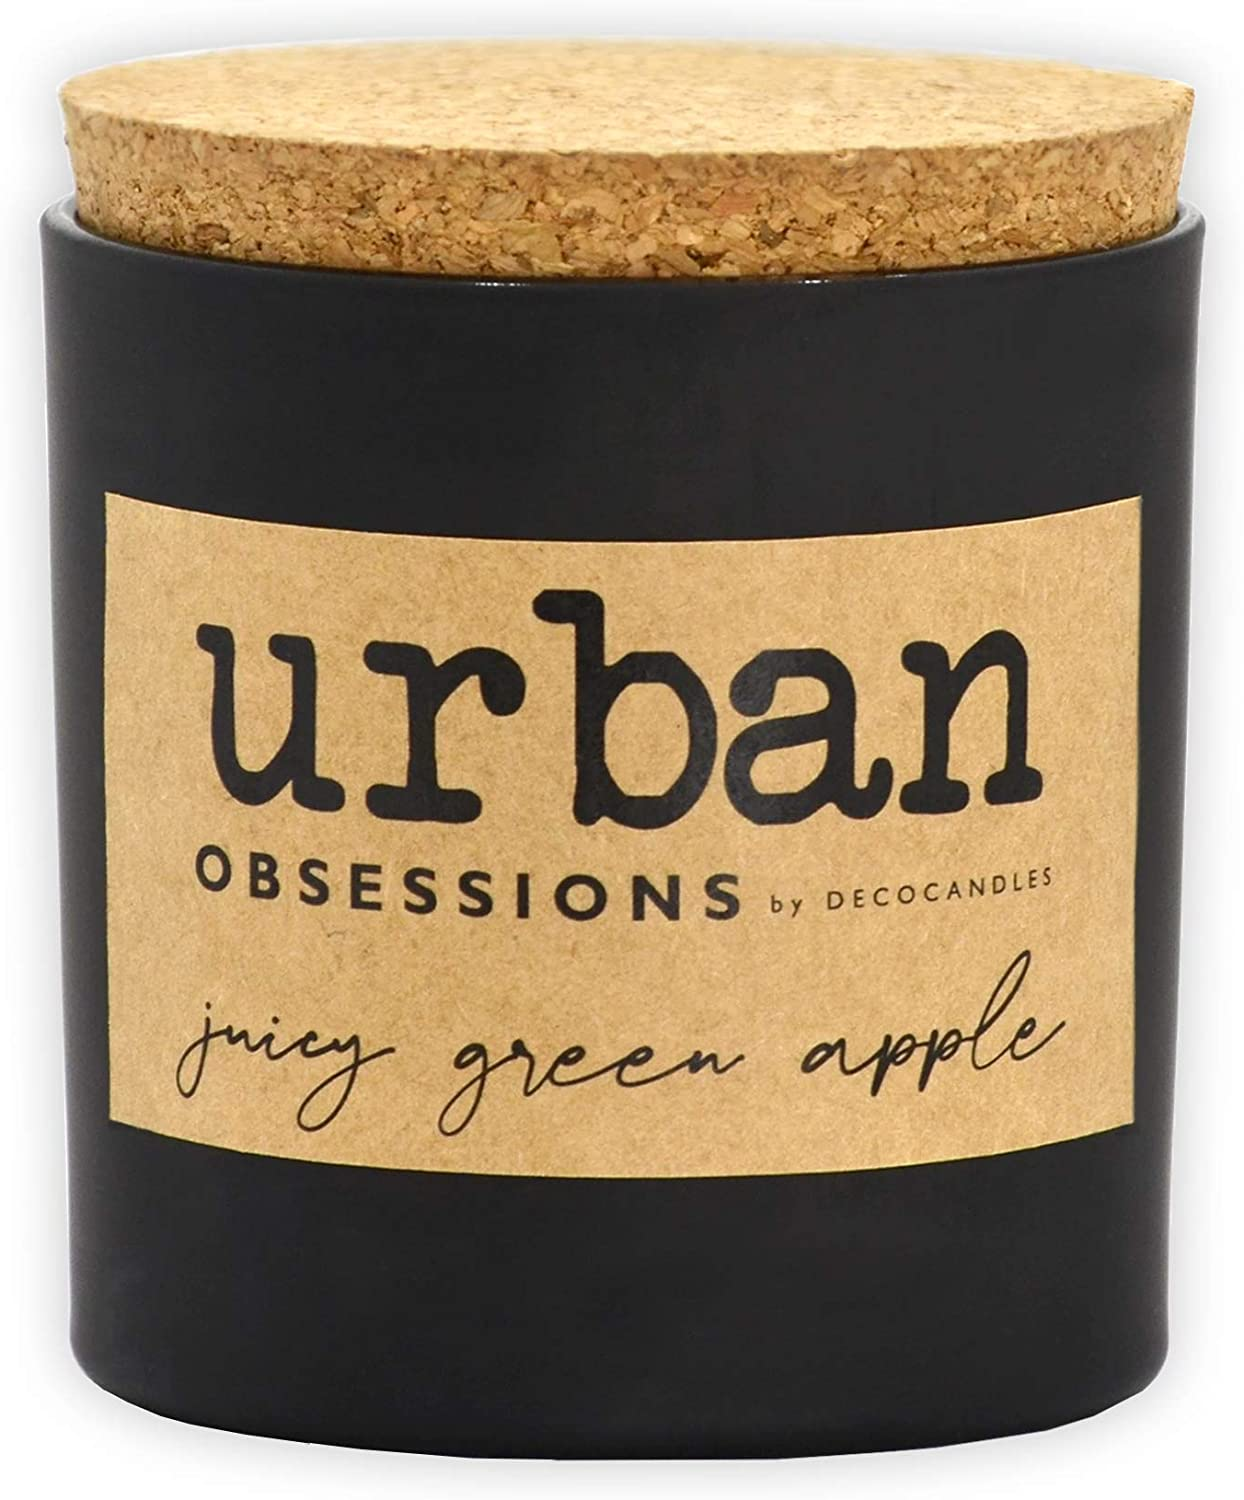 Urban Obsessions by DECOCANDLES   Juicy Green Apple - Highly Scented Soy Candle - Long Lasting - Hand Poured in USA 6.7 Oz. w/Cork lid